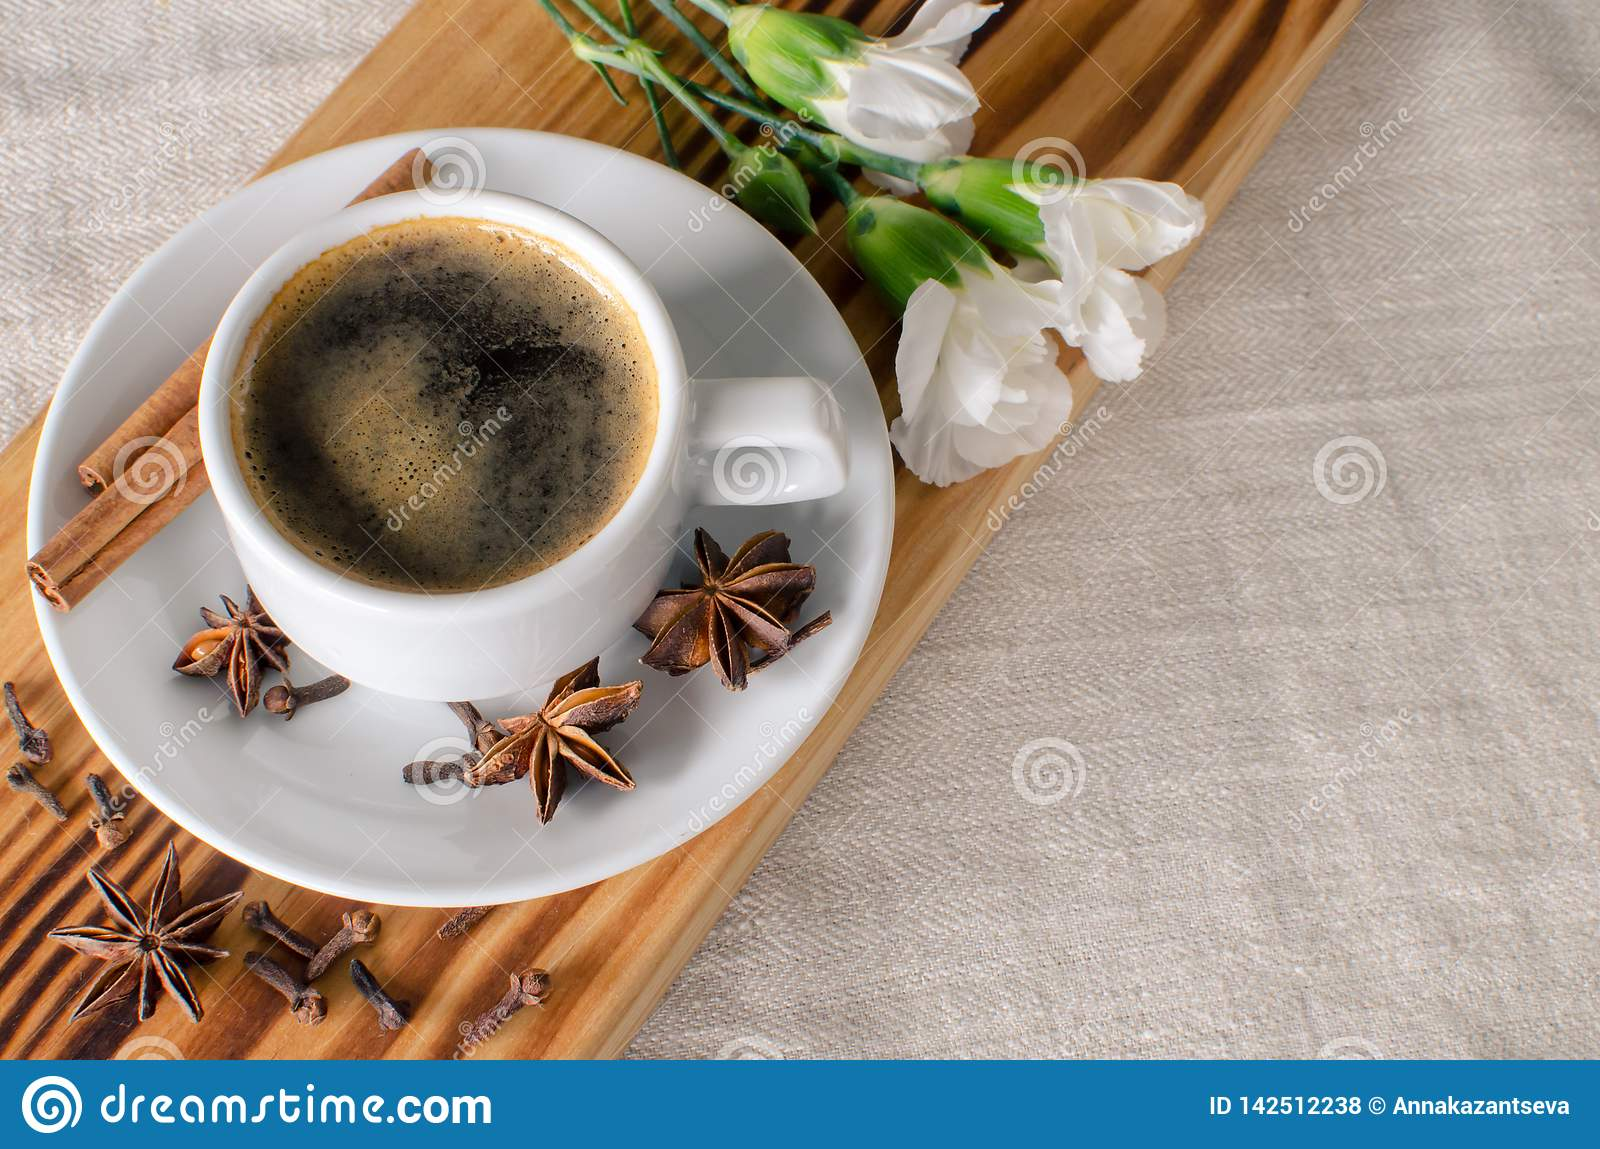 A cup of espresso, cinnamon sticks, anis stars and white carnations on wooden desk and textile background.  Good morning! Copy